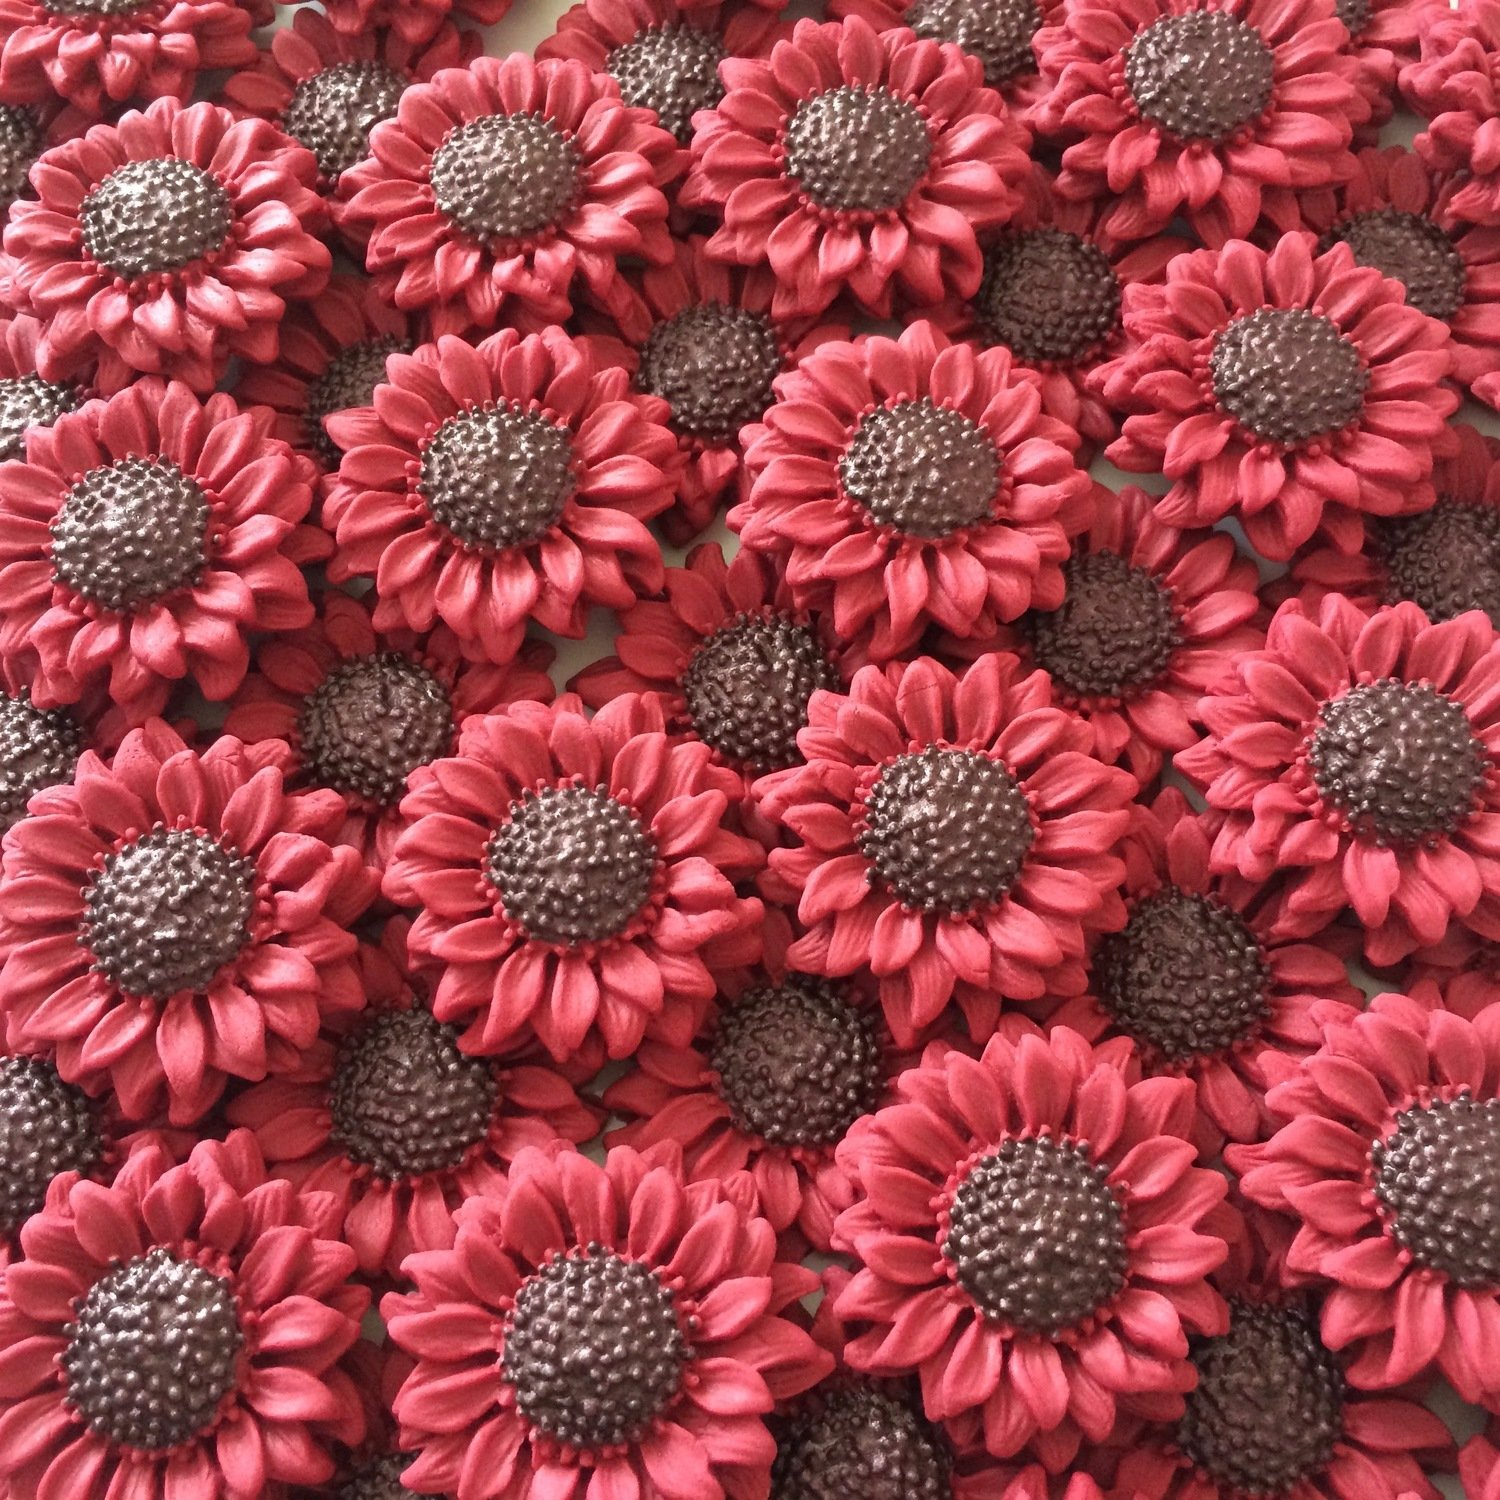 Burgundy Sunflowers